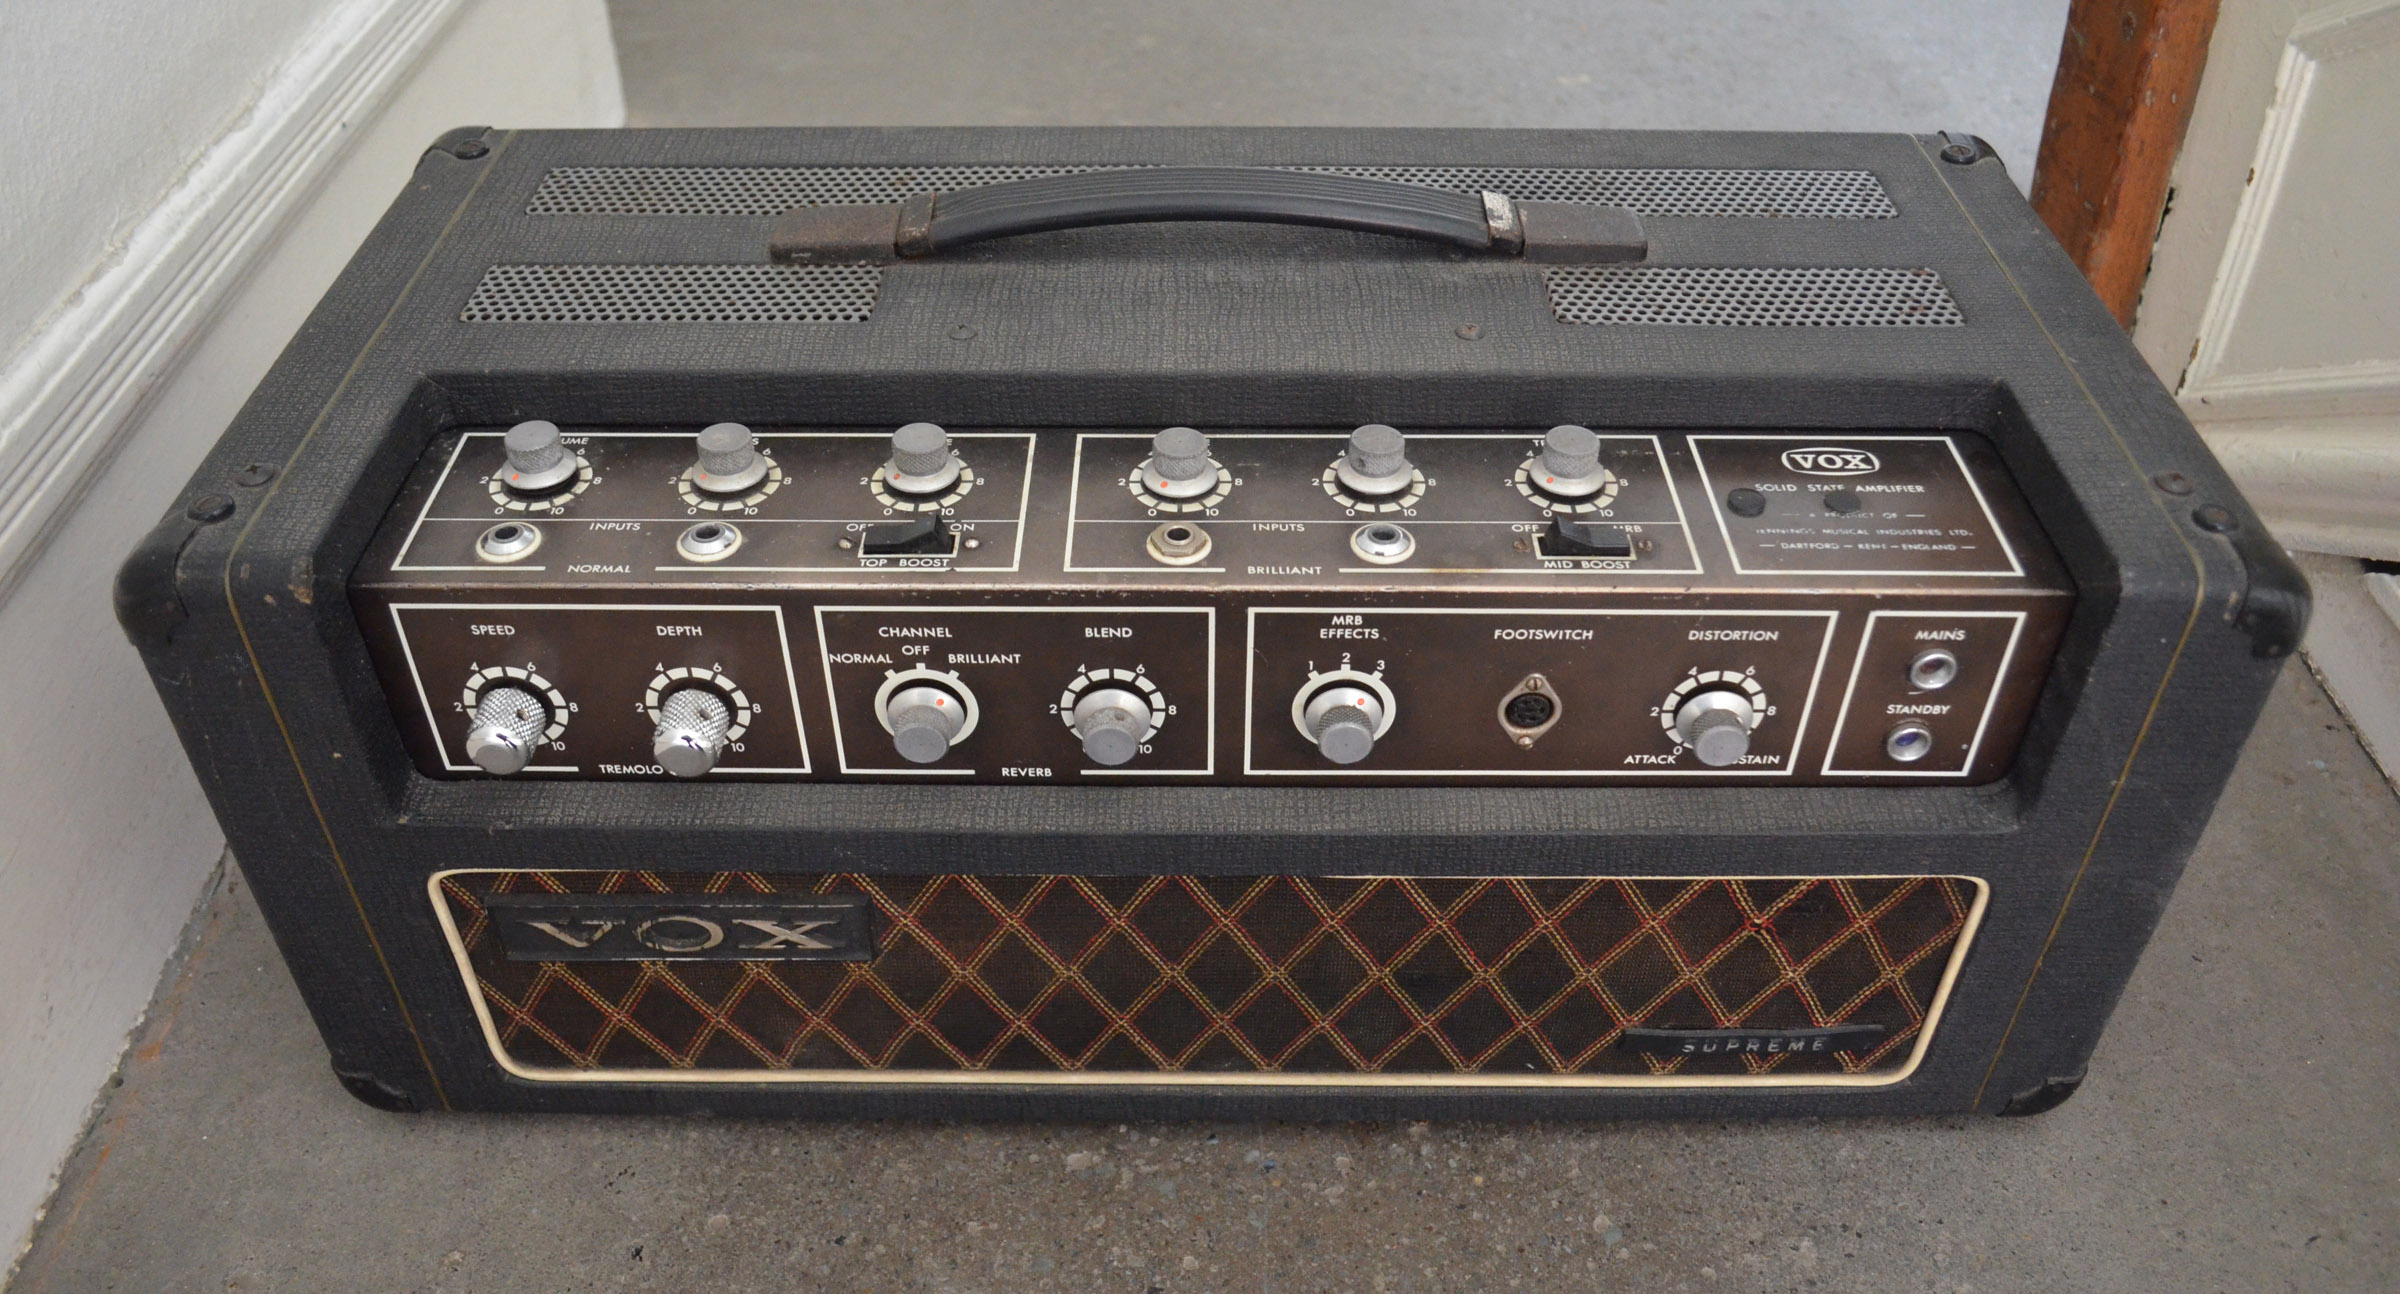 dating vox amps serial number The ac-30 was the sole vox amp model that survived the it is easy to determine the age of an ac30tb or tbx from the serial number on the id plaque on the upper.